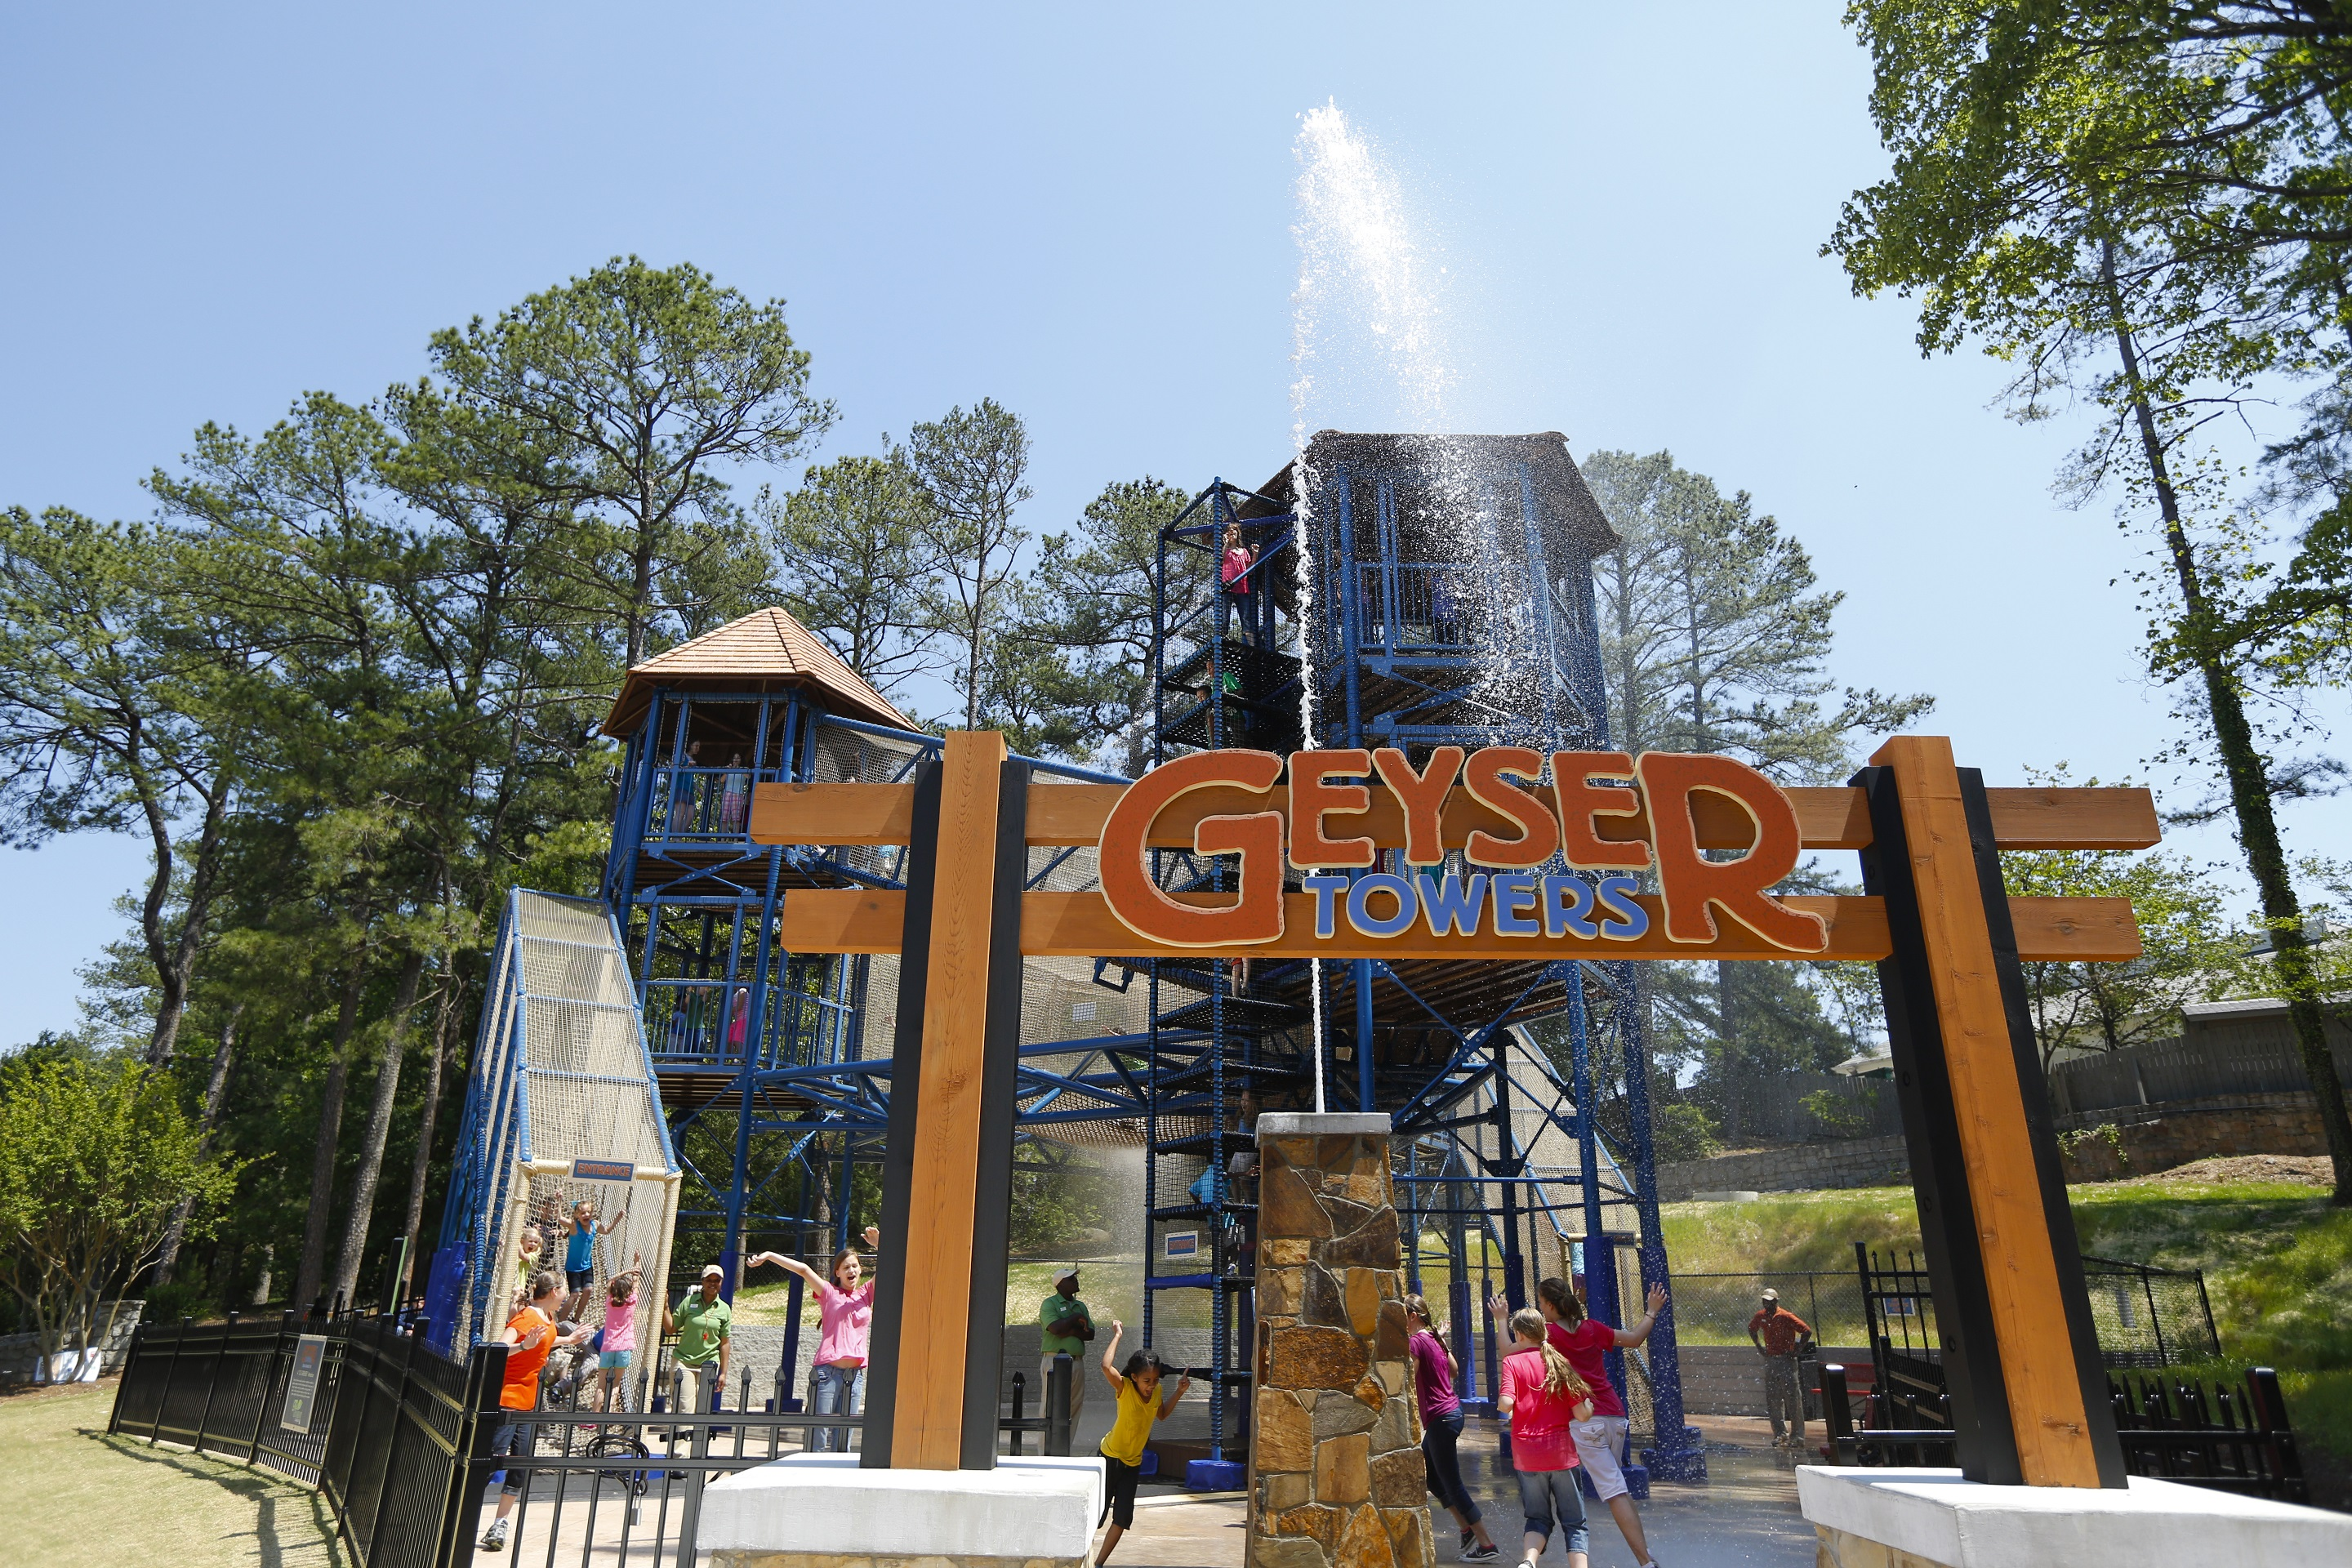 Geyser Towers at Crossroads at Stone Mountain Park